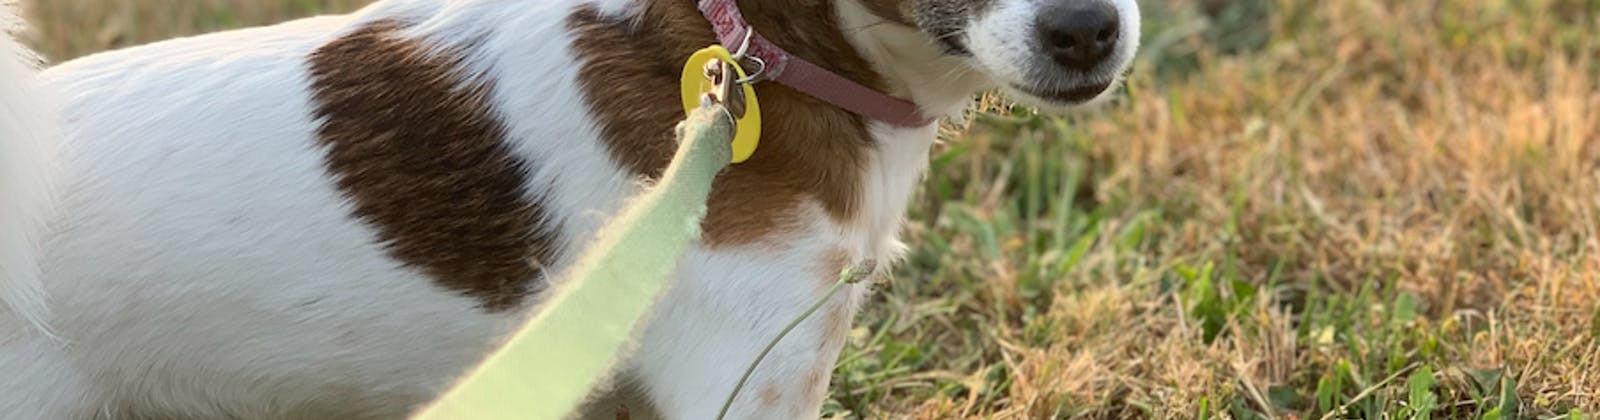 small dog on leash smiling at camera